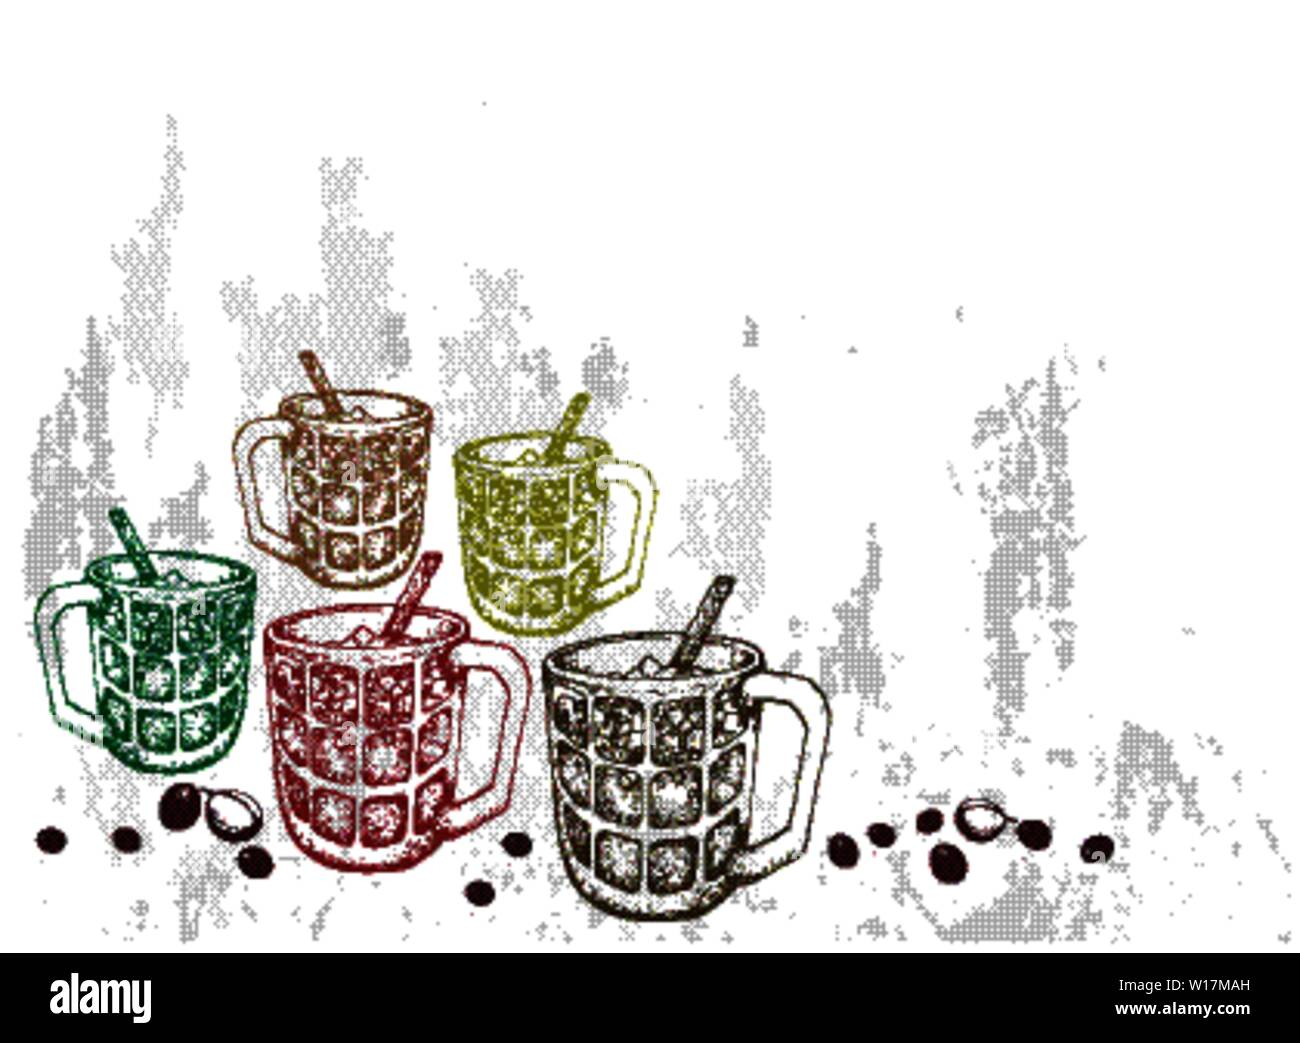 Drink and Beverage, Illustration Hand Drawn Sketch of Iced Coffee or Iced Tea. Stock Vector